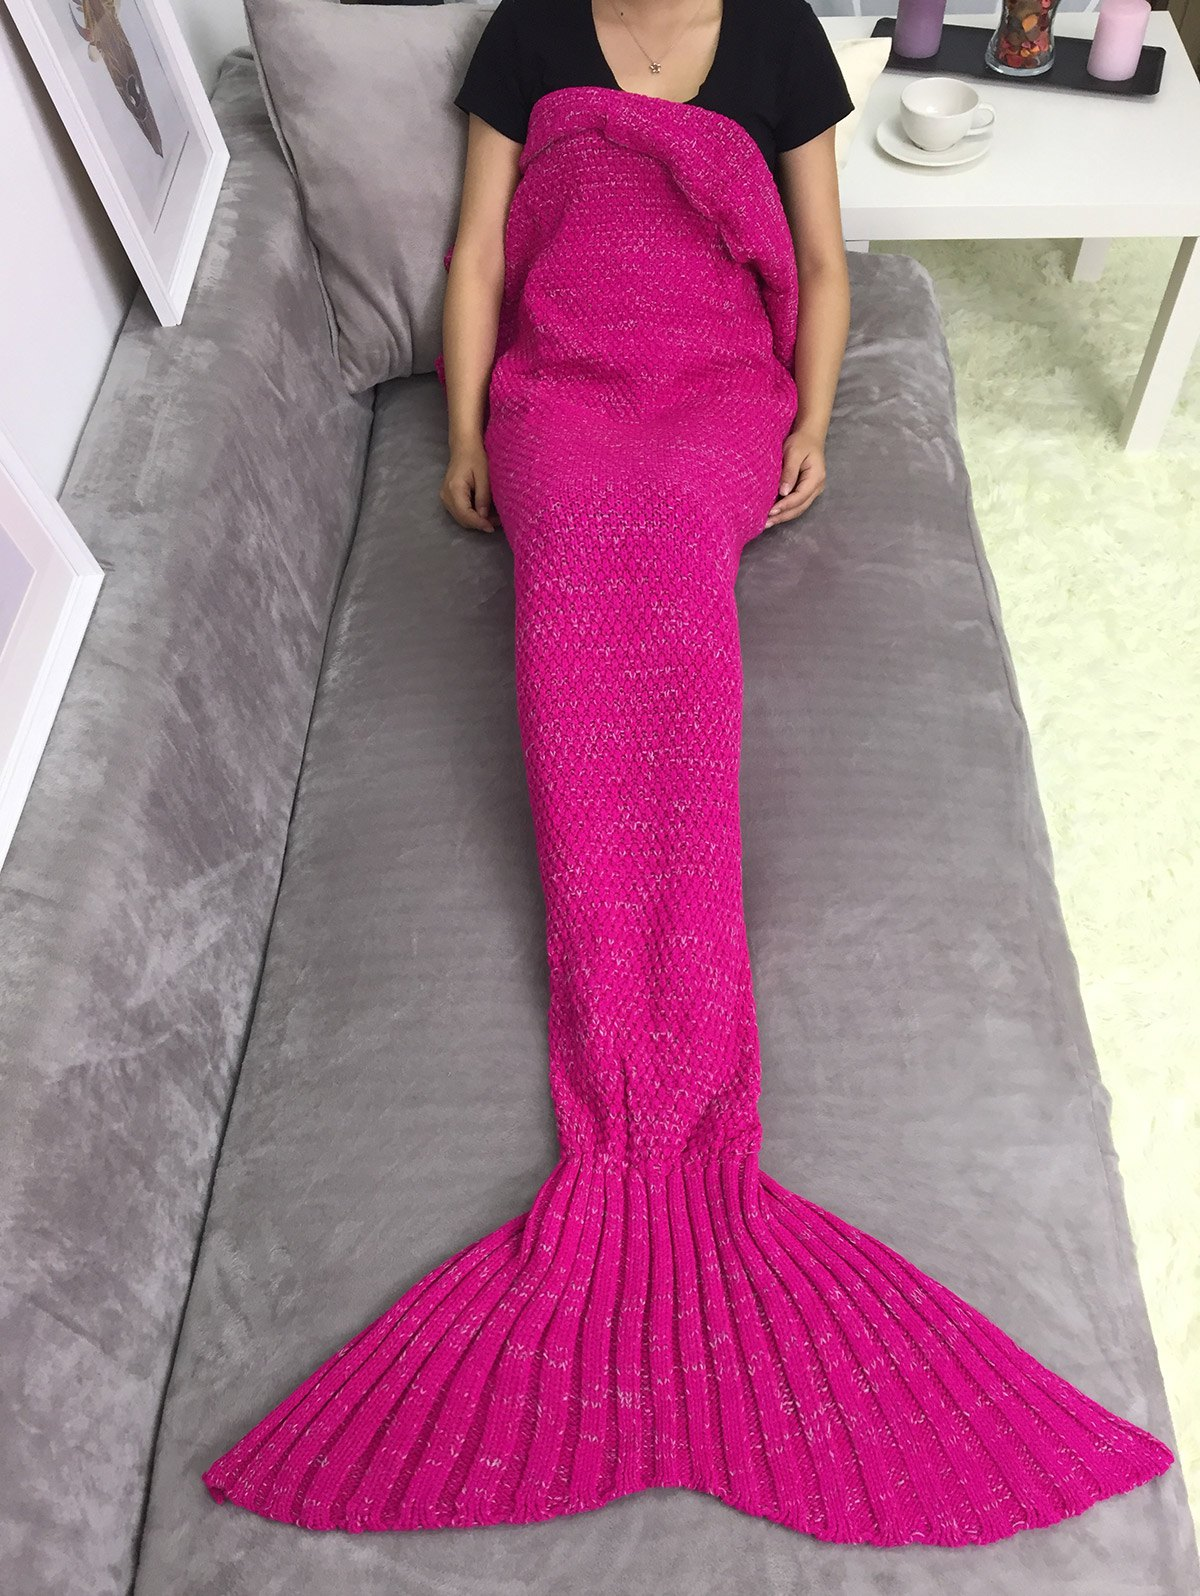 Comfortable Sleeping Bag Mermaid Knitted Blanket - ROSE RED